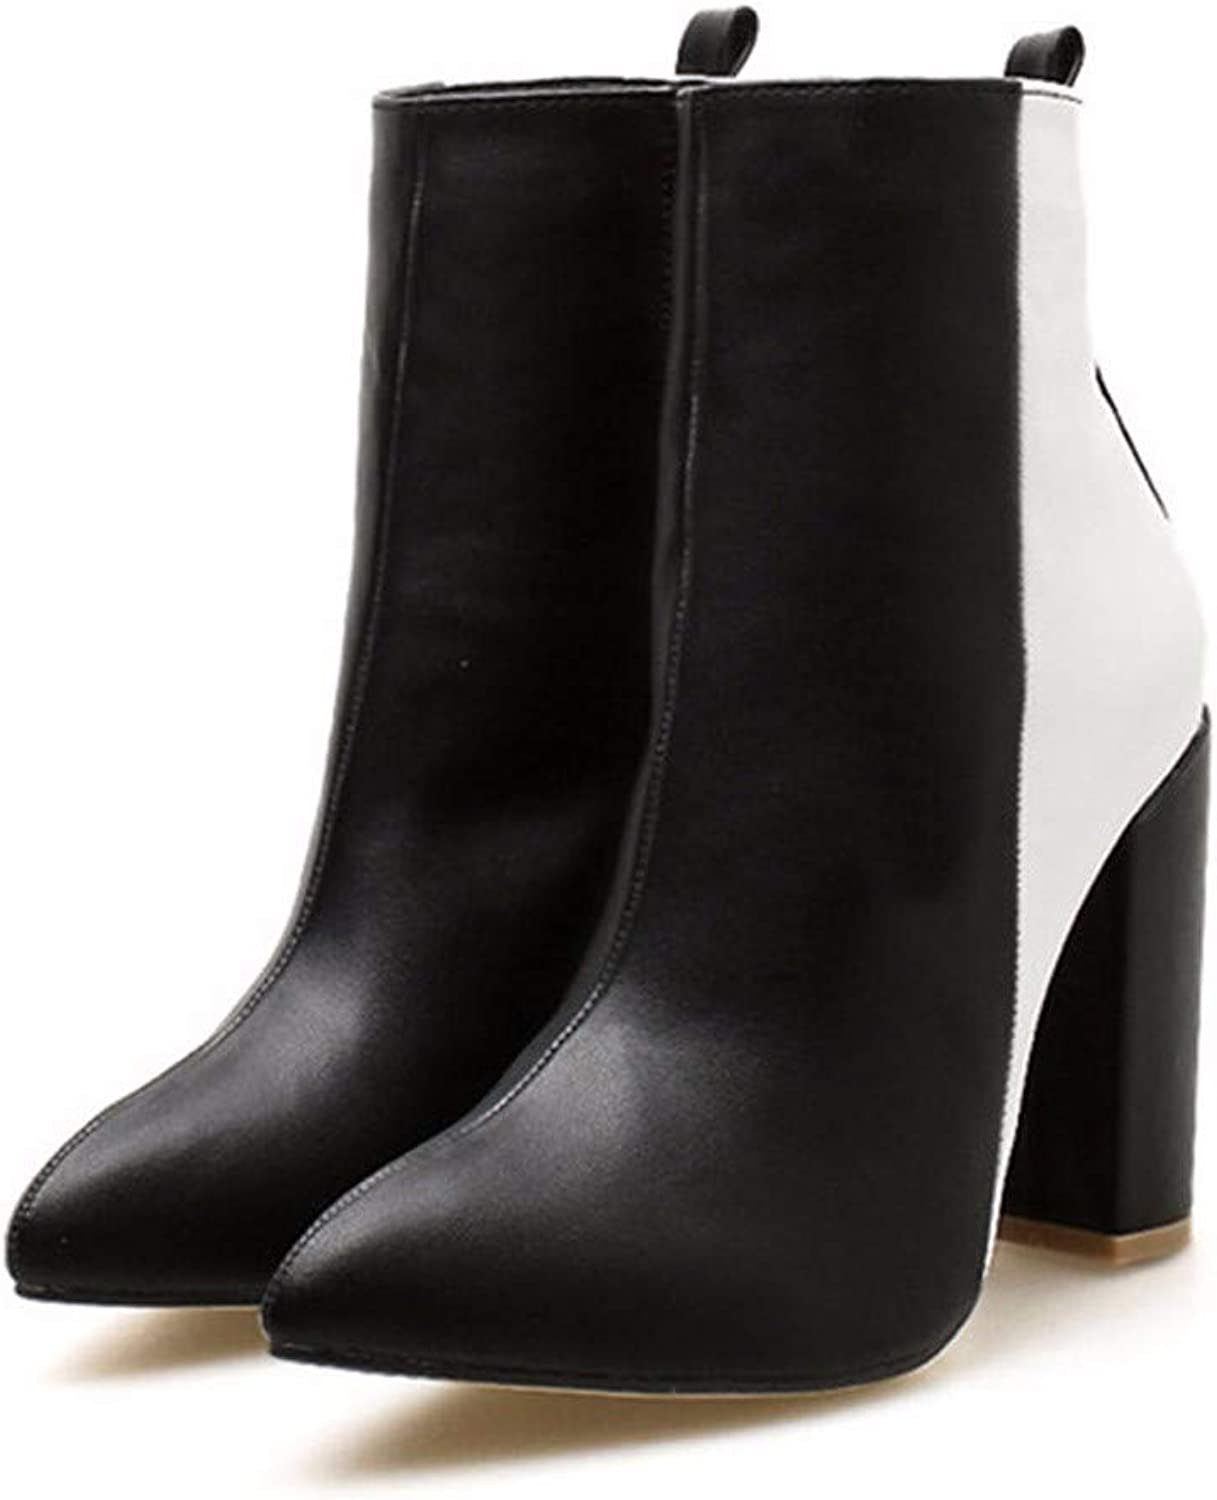 SFSYDDY Popular shoes Black and White Heel Height 10Cm Pointed Thick Heel Ankle Boots Side Zipper Long Legs Slim Short Boots Martin Boots